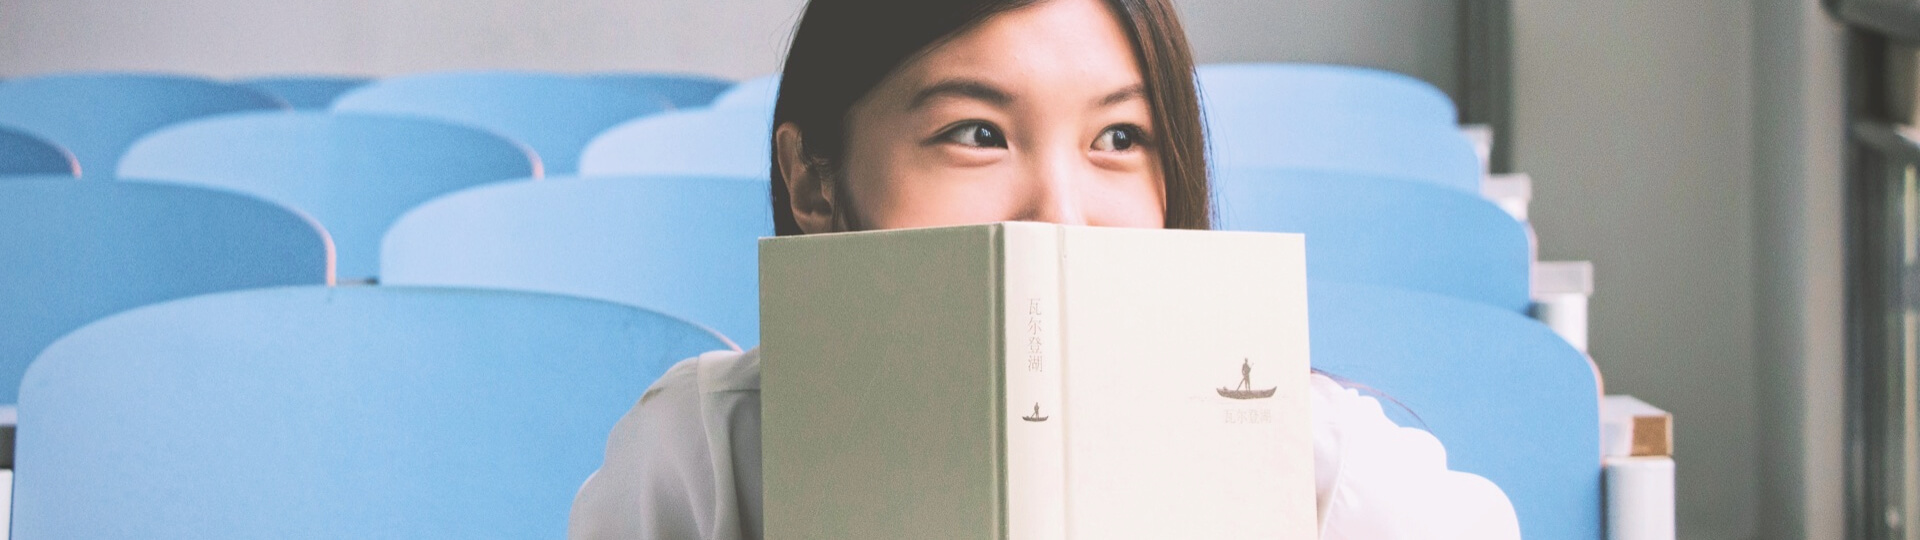 Woman peering over the top of book